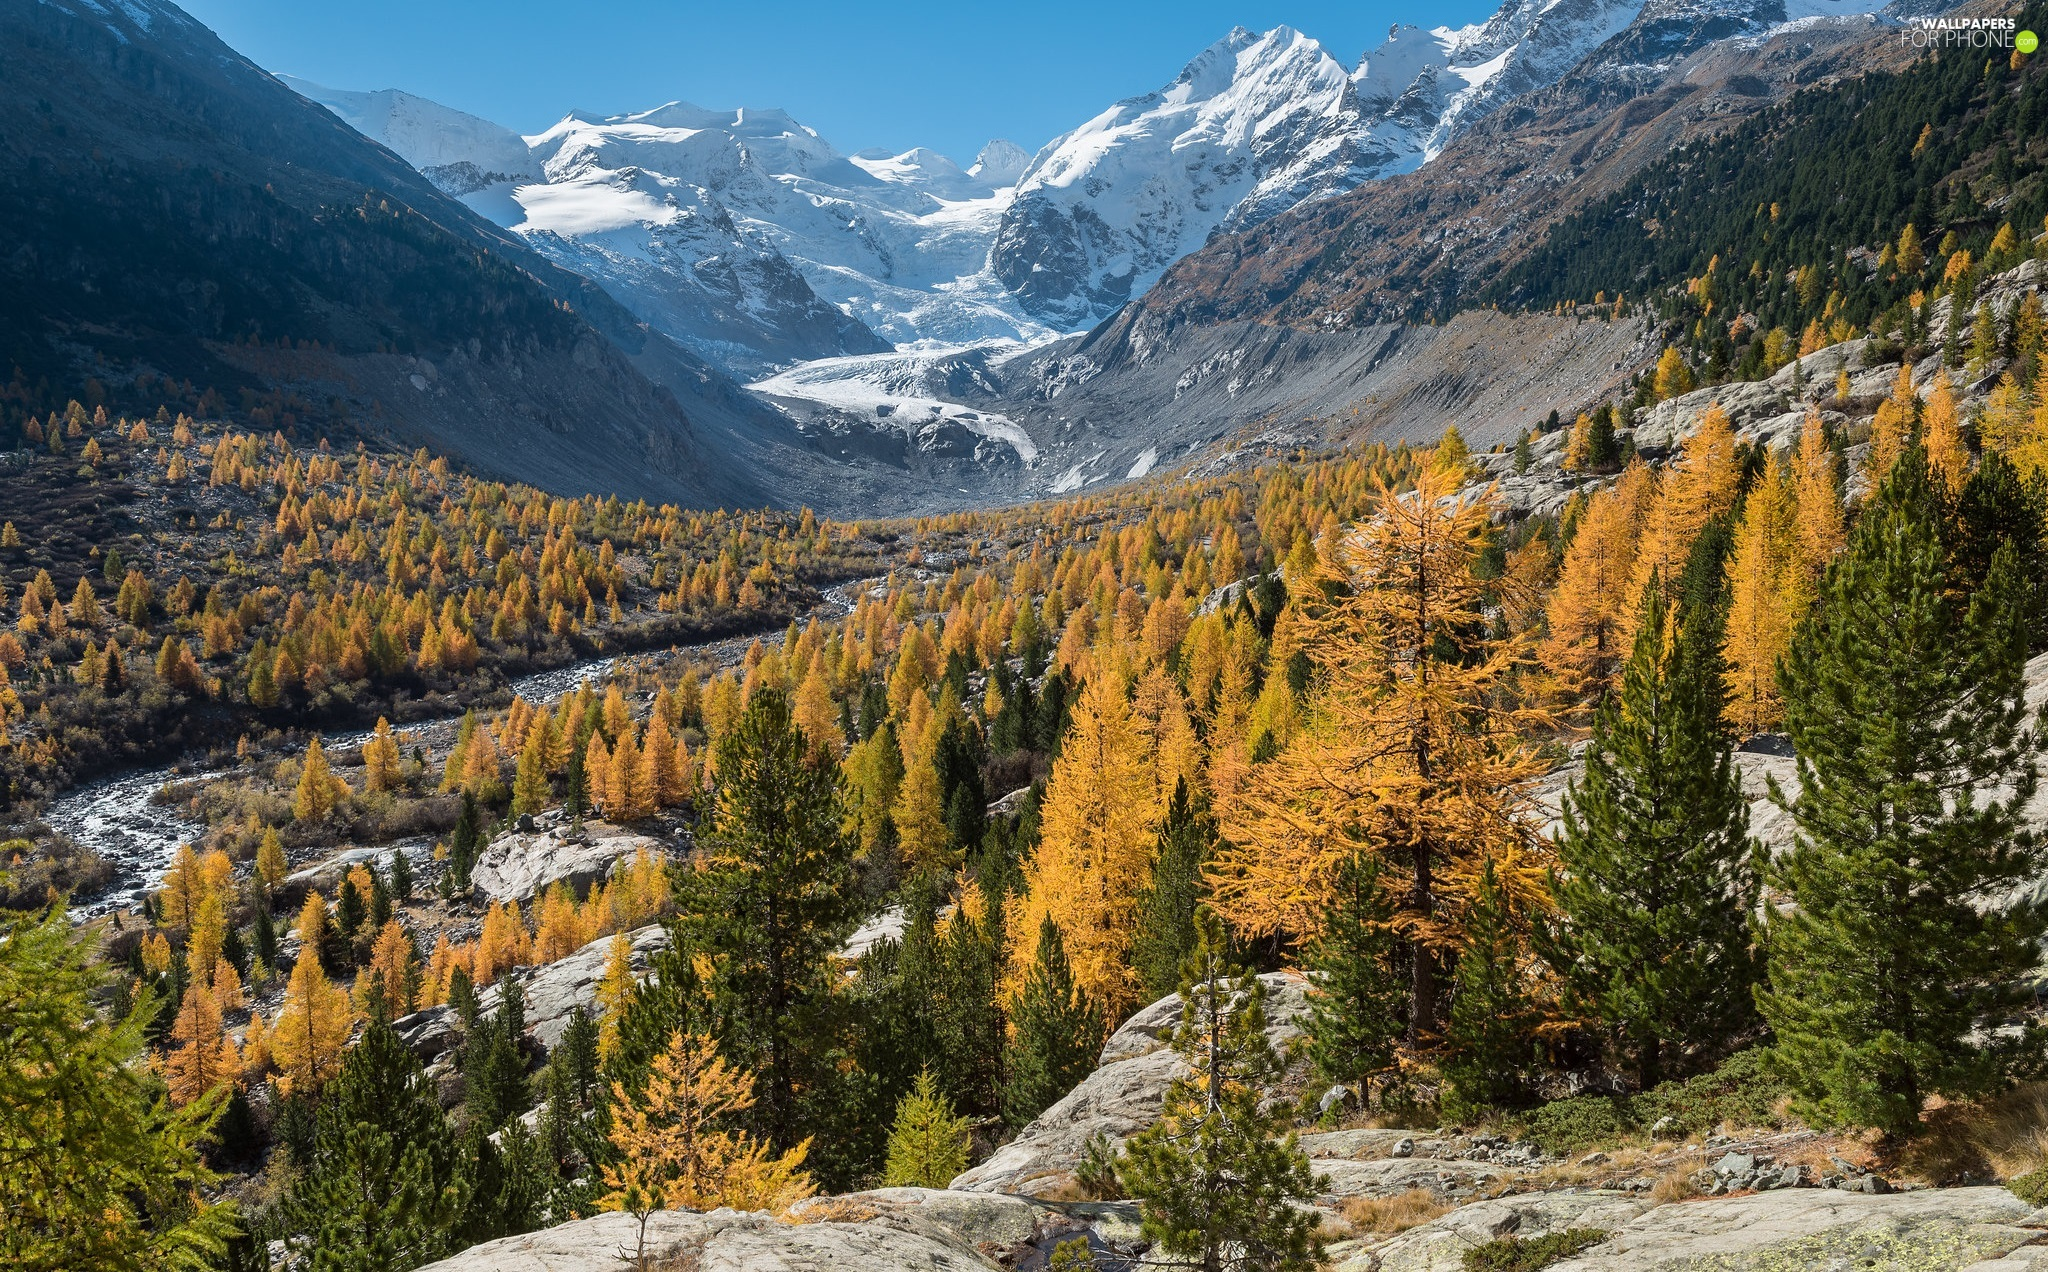 Mountains, autumn, rocks, Yellow, Canton Graubunden, Switzerland, viewes, Morteratschgletscher Glacier, trees